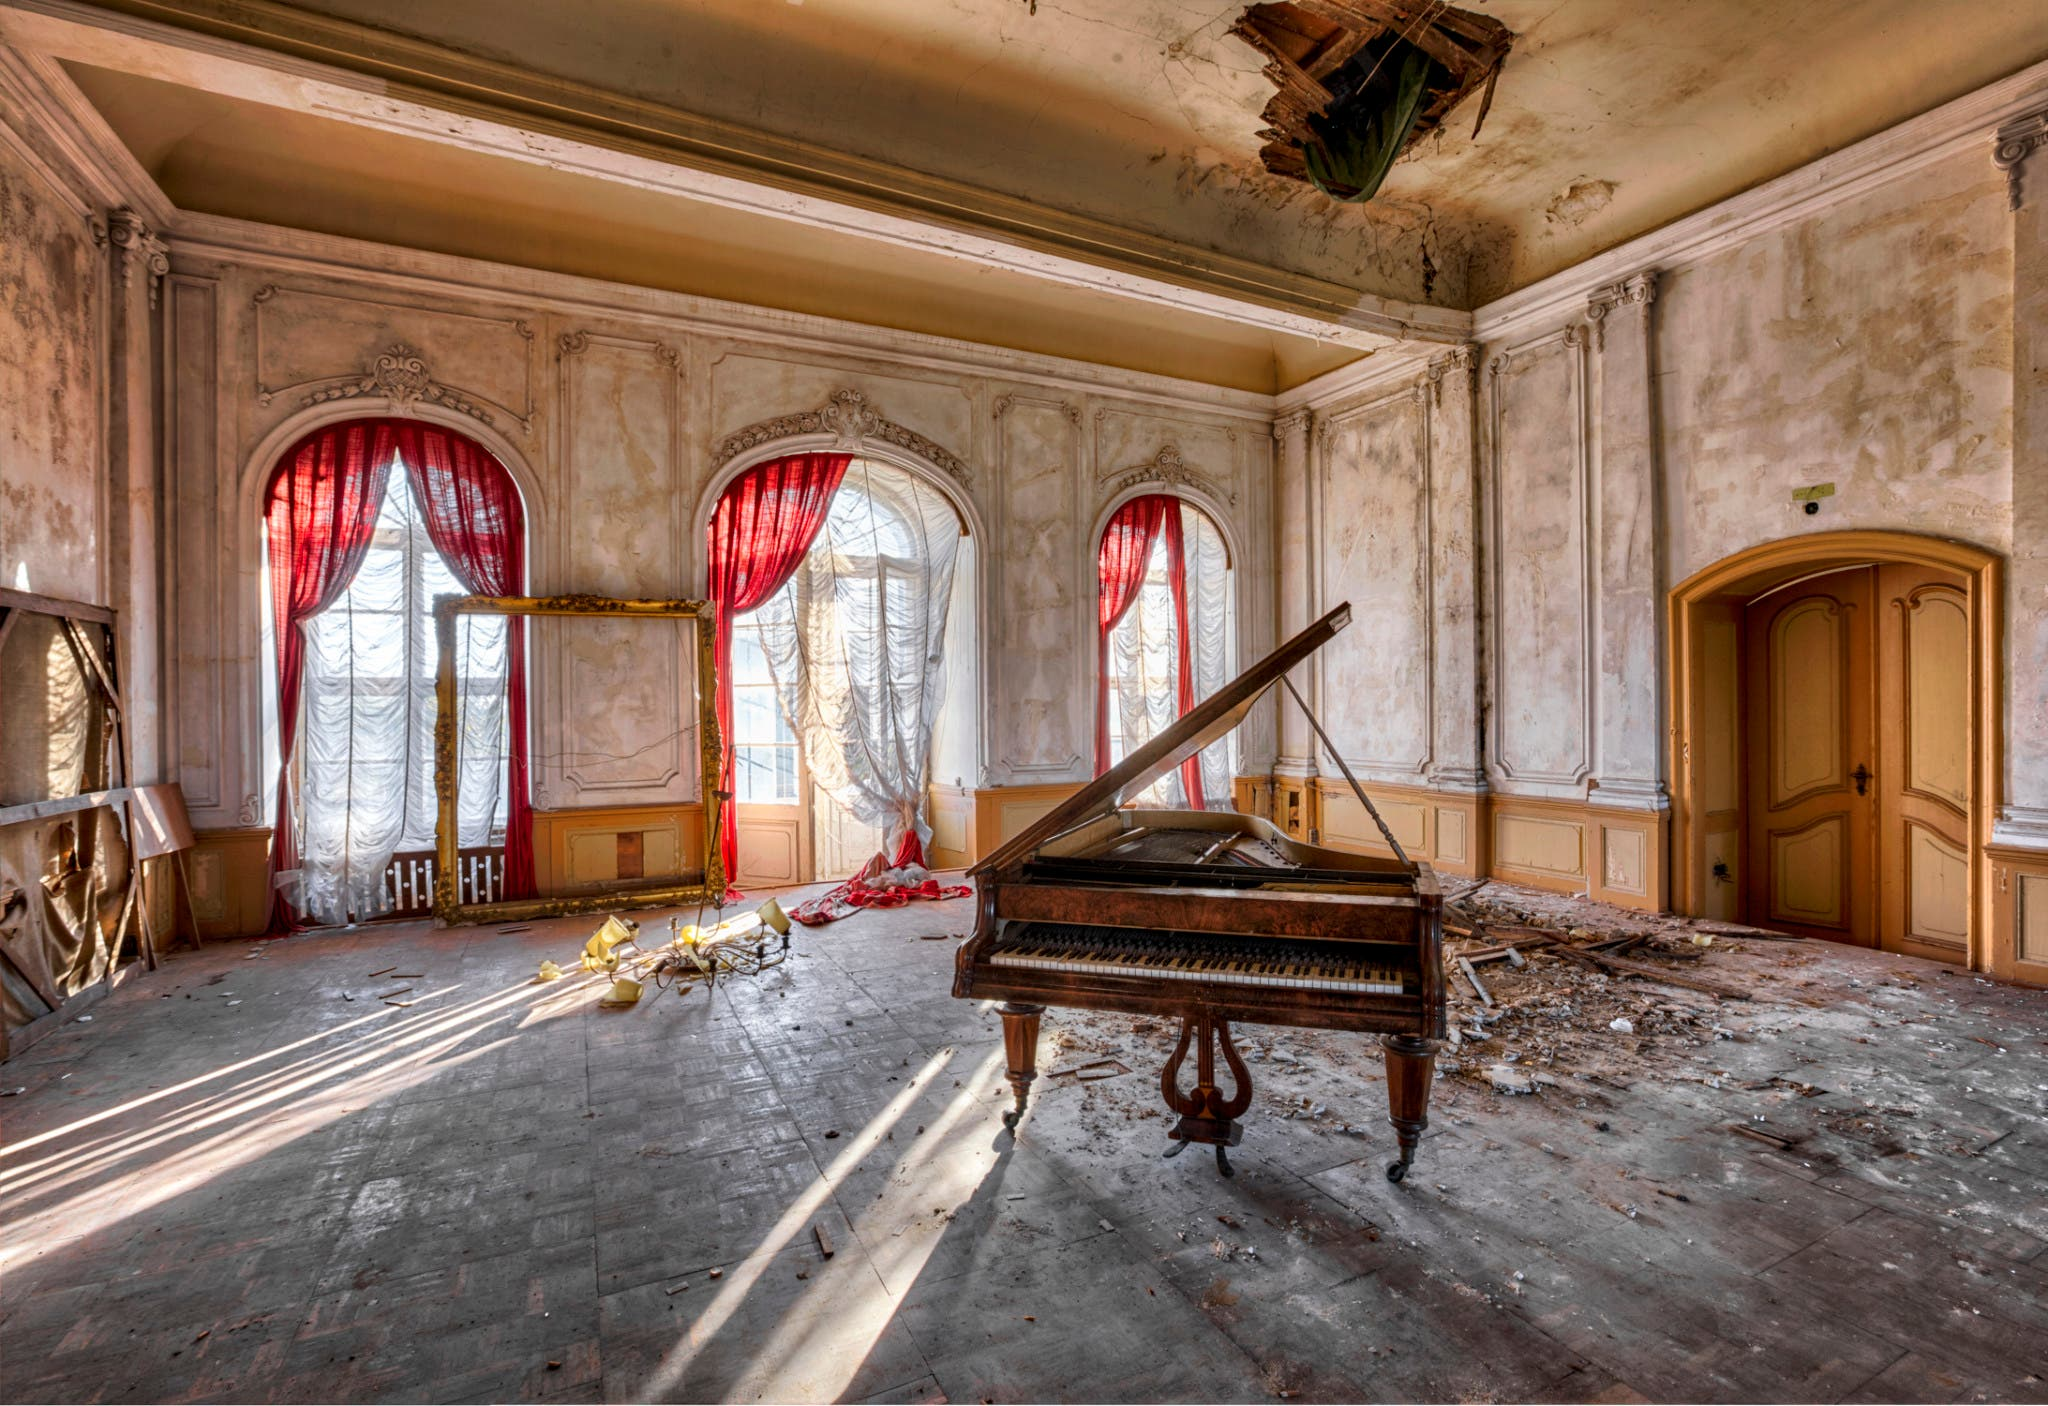 An Urban Decay Photography Project Turns Abandoned Buildings Into Work of Art